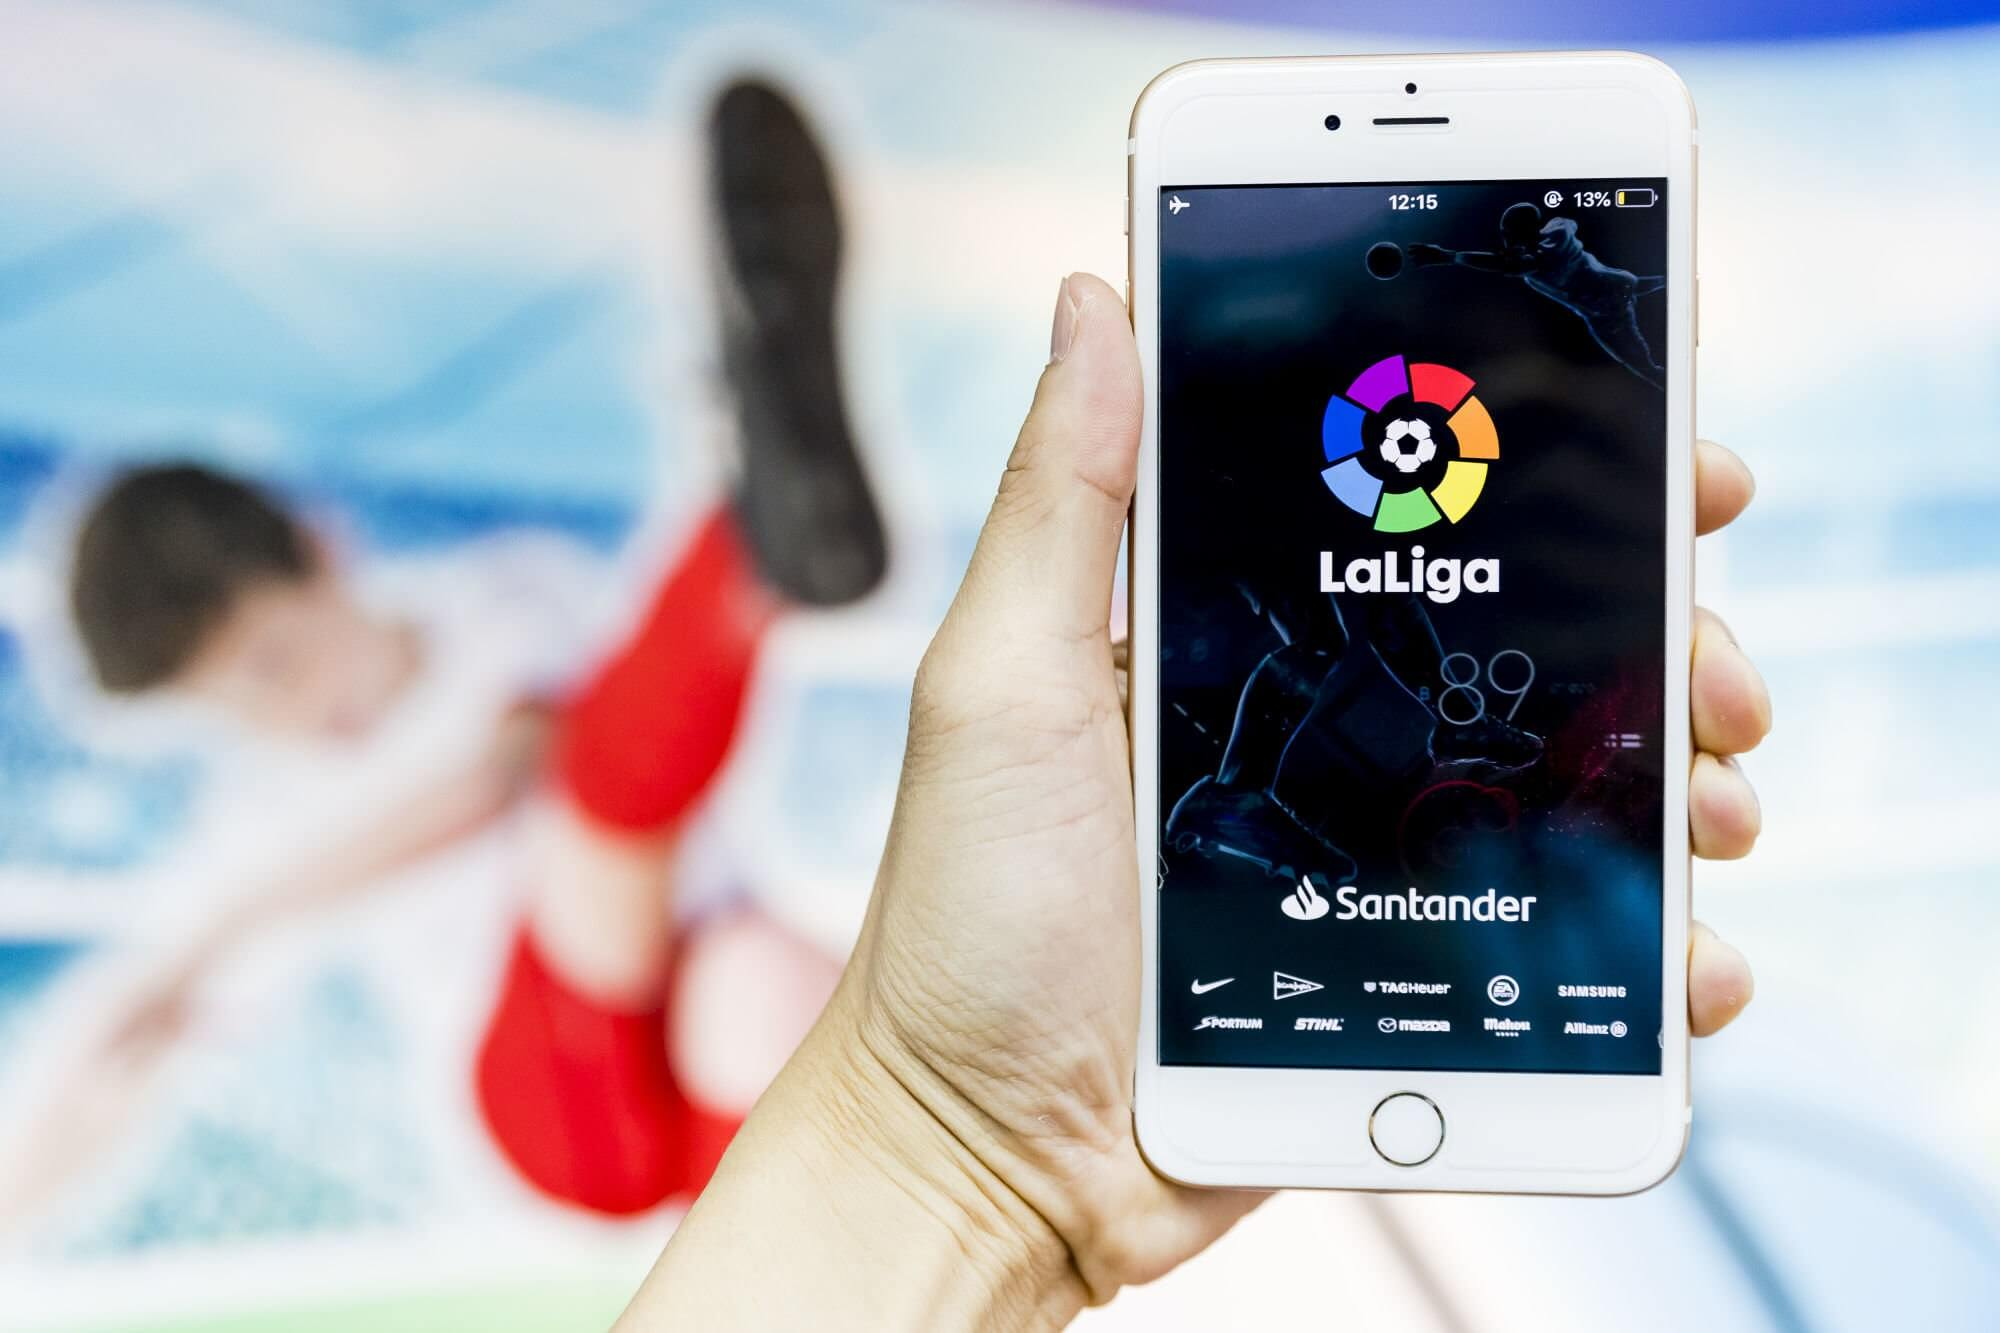 Spain's LaLiga app used audio recognition tech to catch users